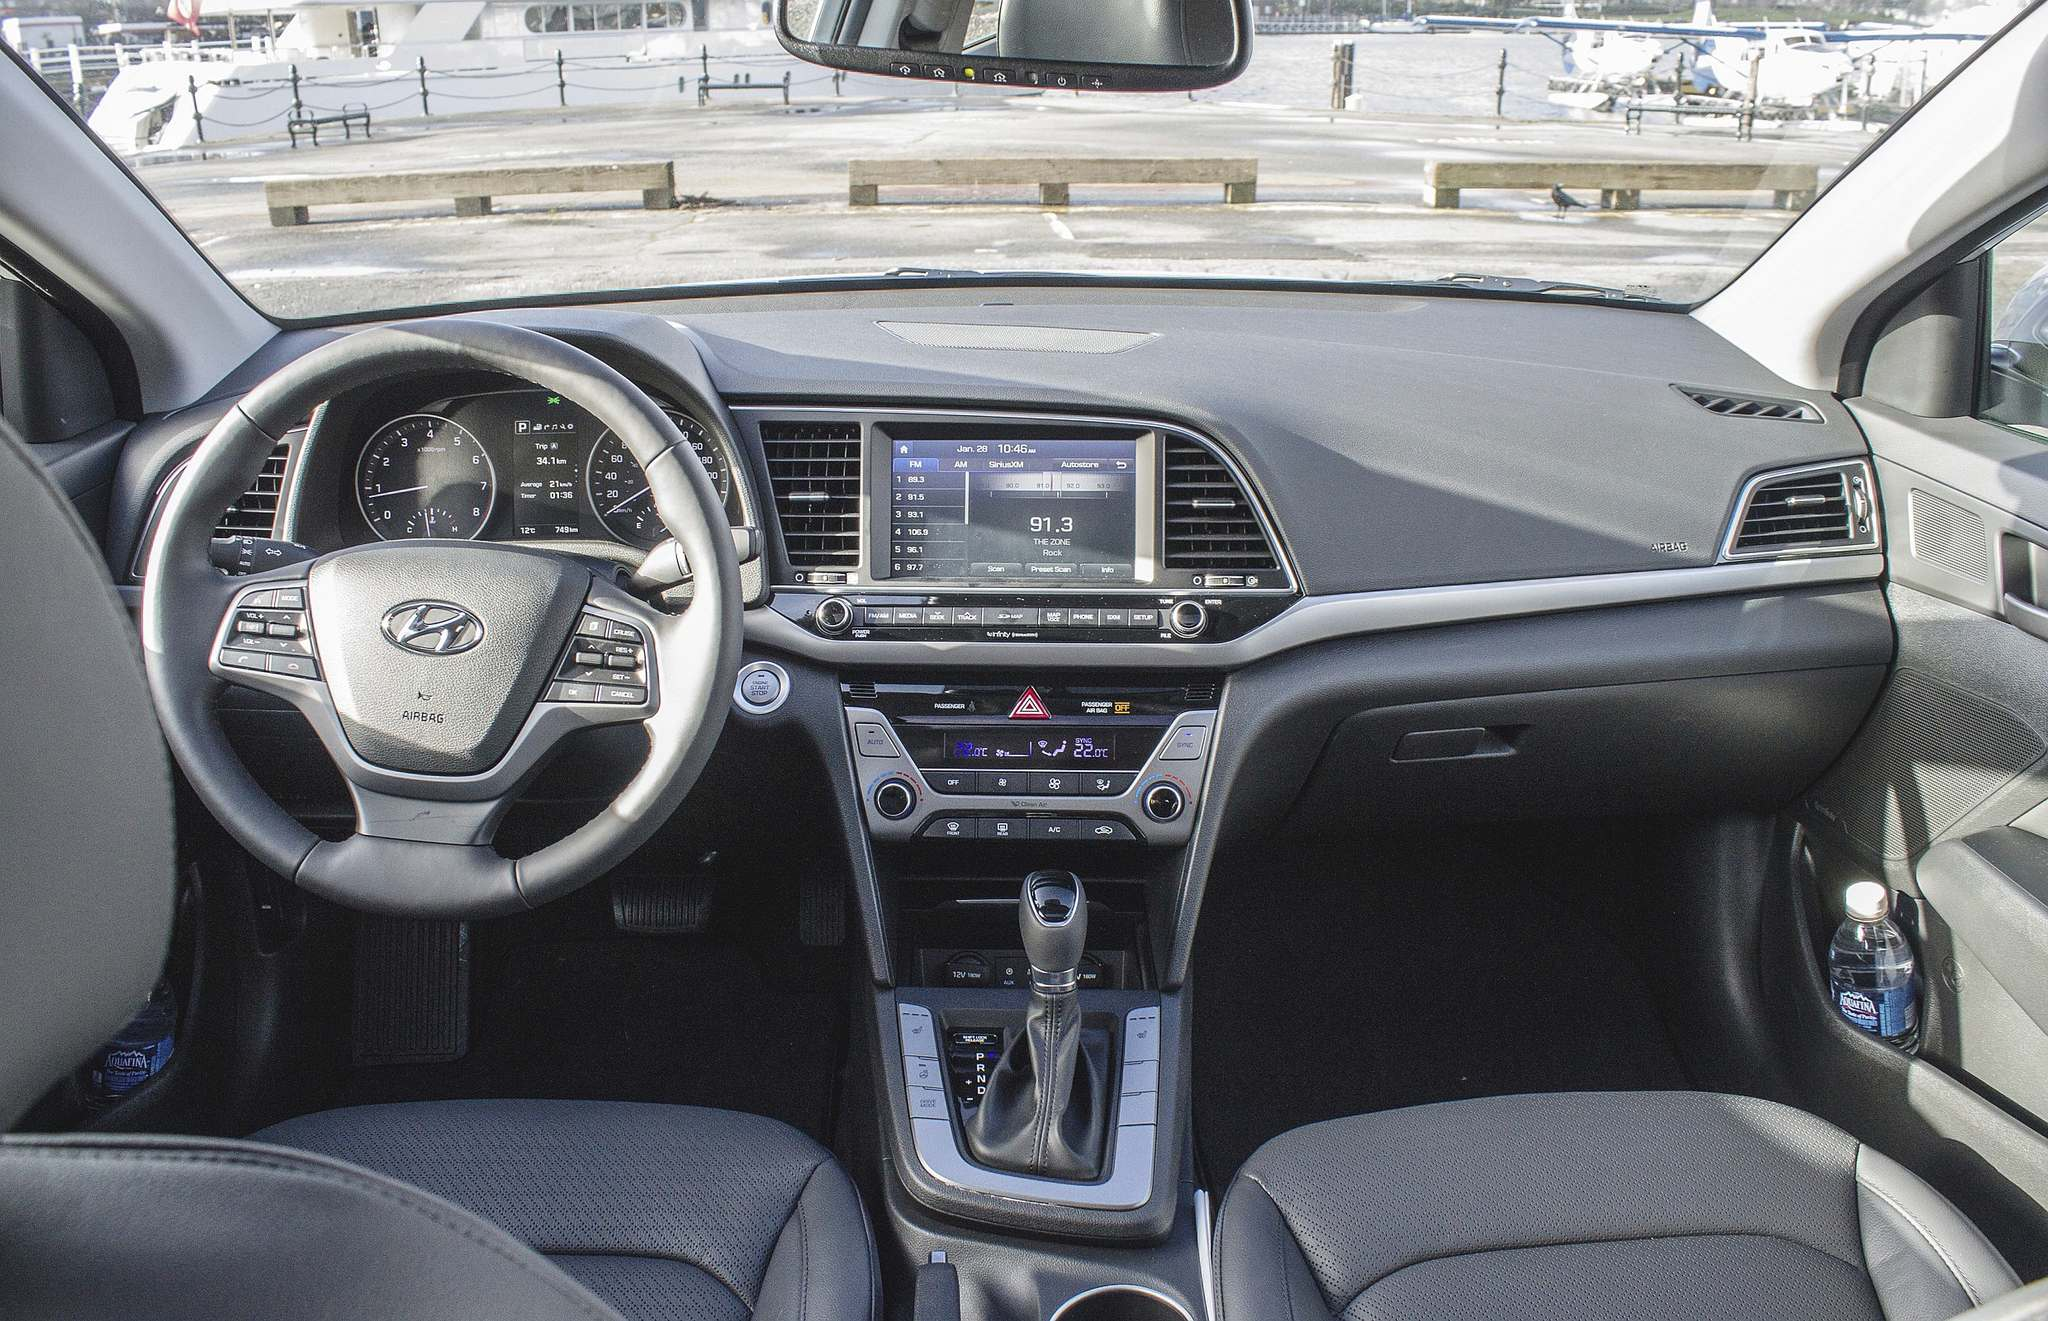 Brendan McAleer / Postmedia Network Inc.The Elantra is available with options such as leather seats and an easy to operate navigation system.